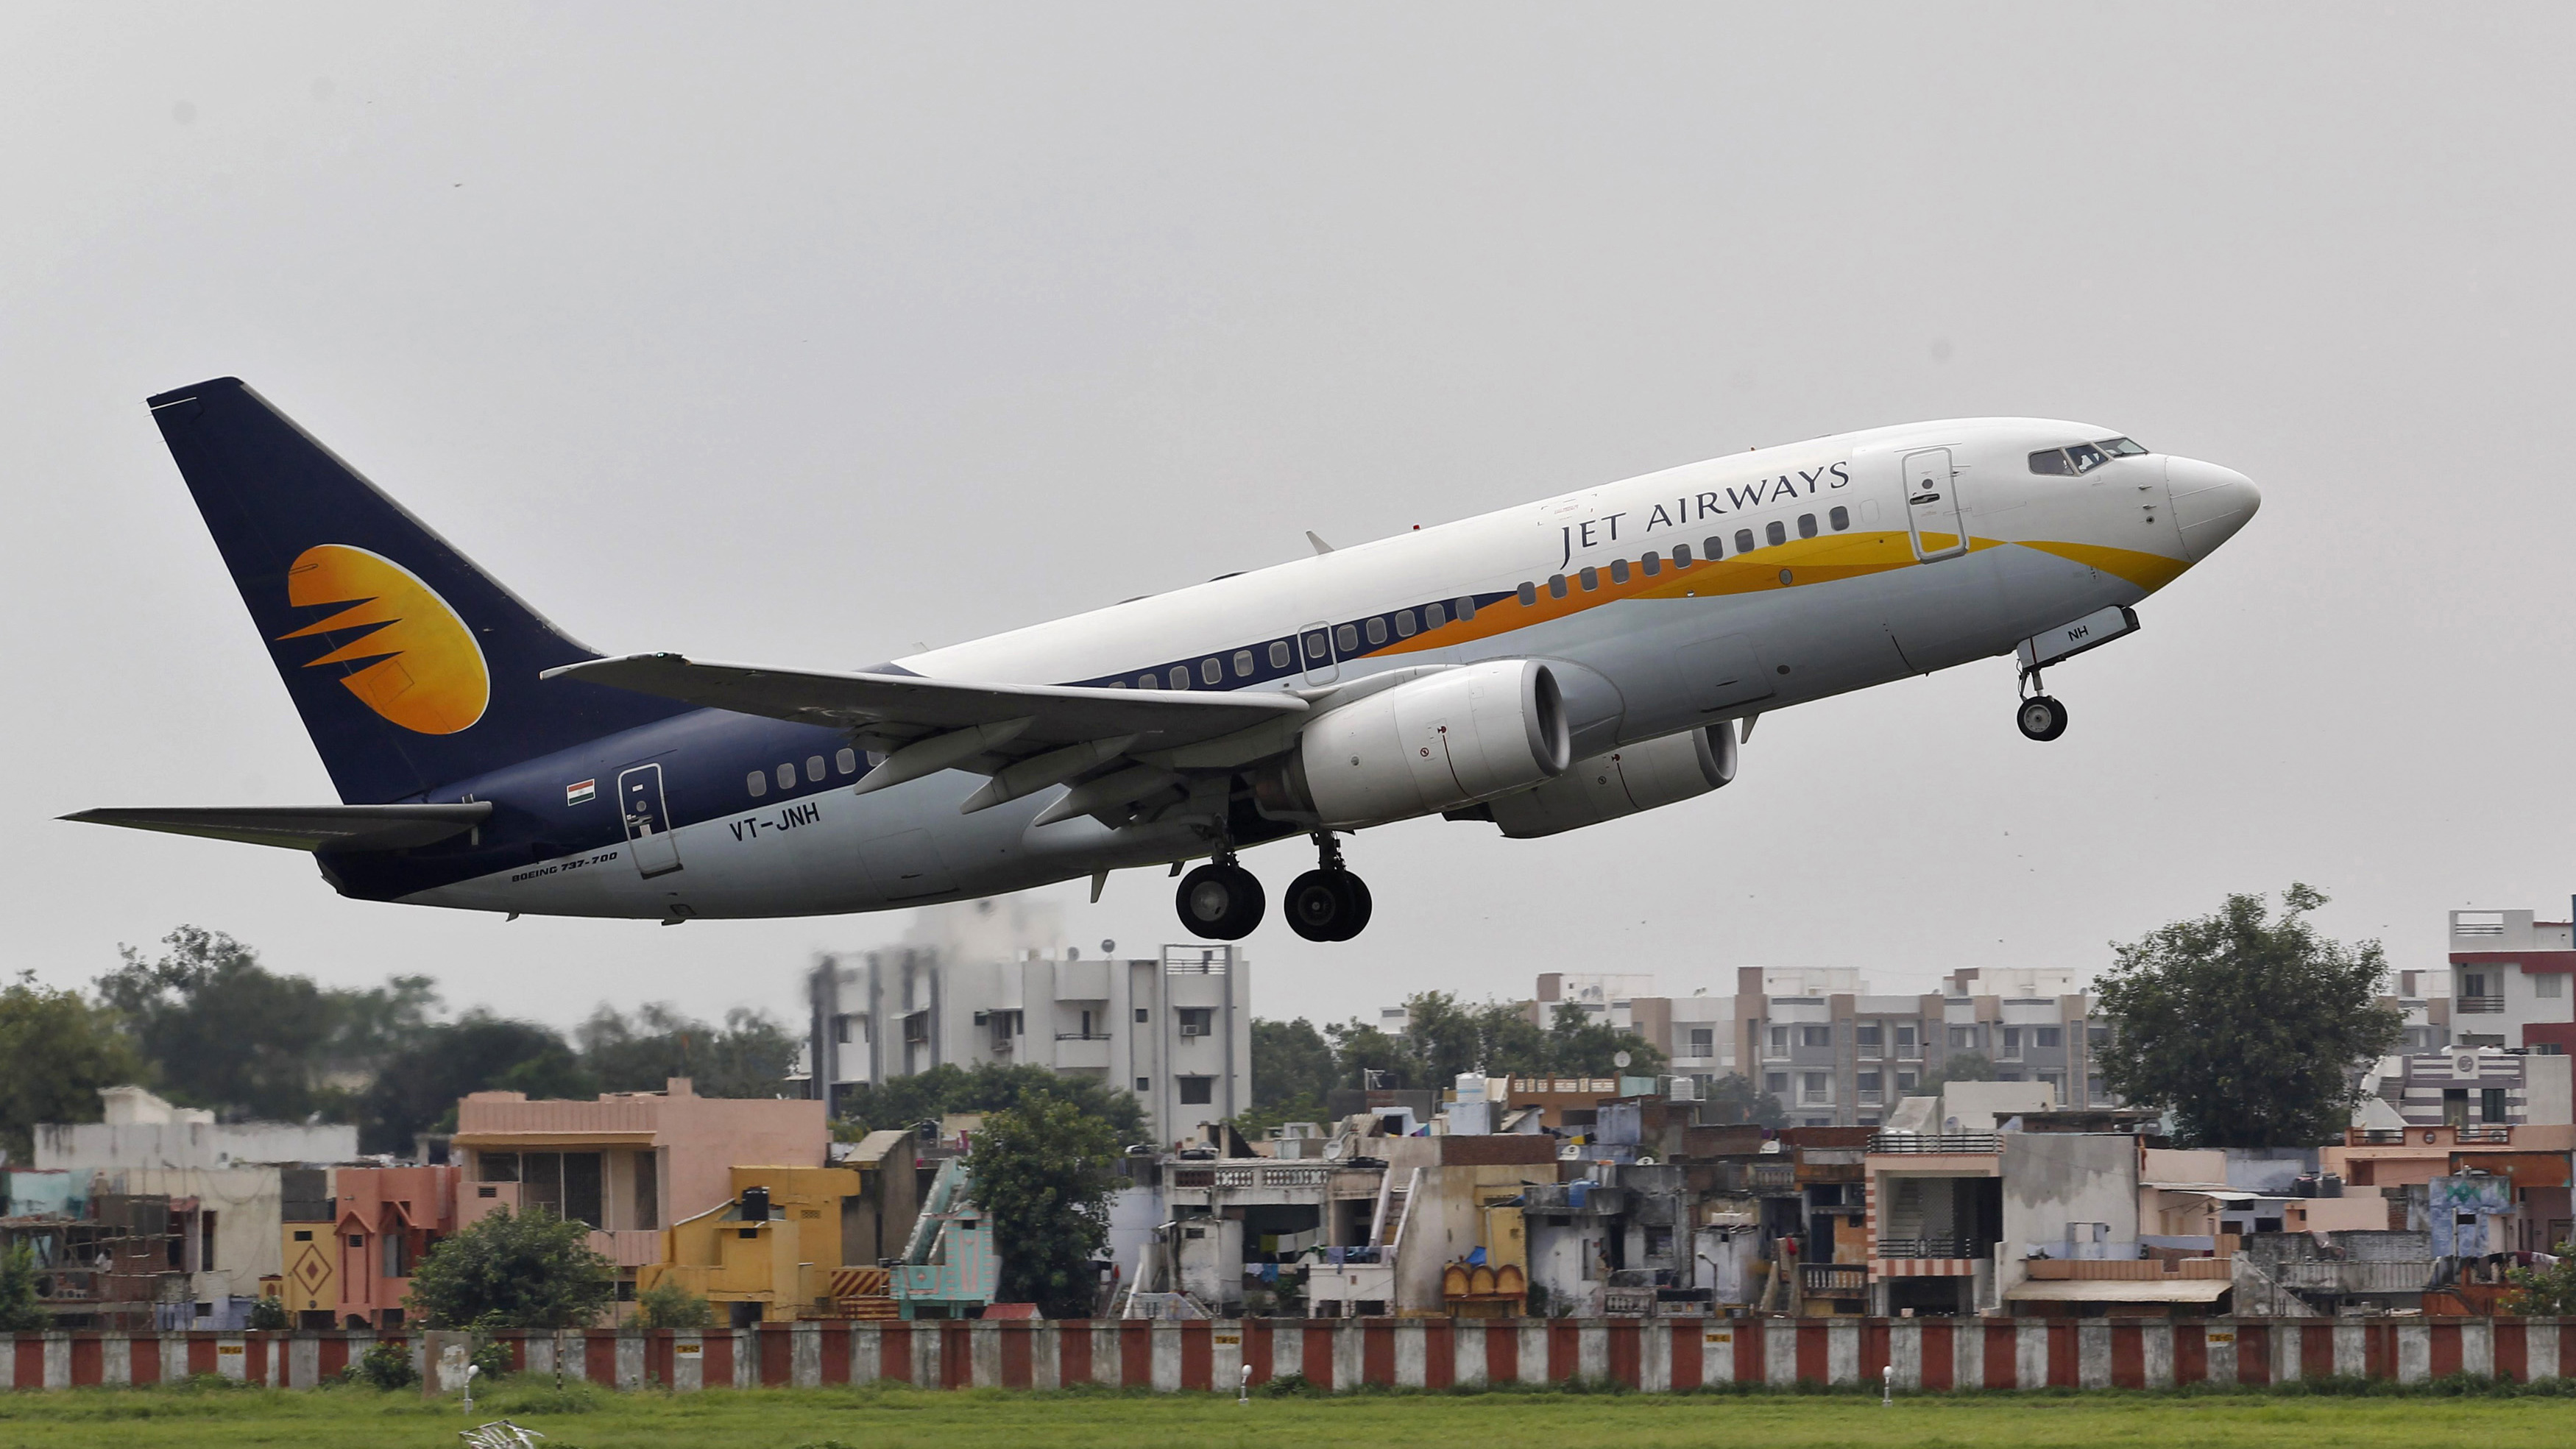 Jewar Airport, Property market around Jewar airport, Real estate deals around Jewar airport, Investments around Jewar airport, Property boom near Jewar airport, Jewar airport in Delhi NCR, India real estate news, Indian property market, Track2Media Research, Track2Realty